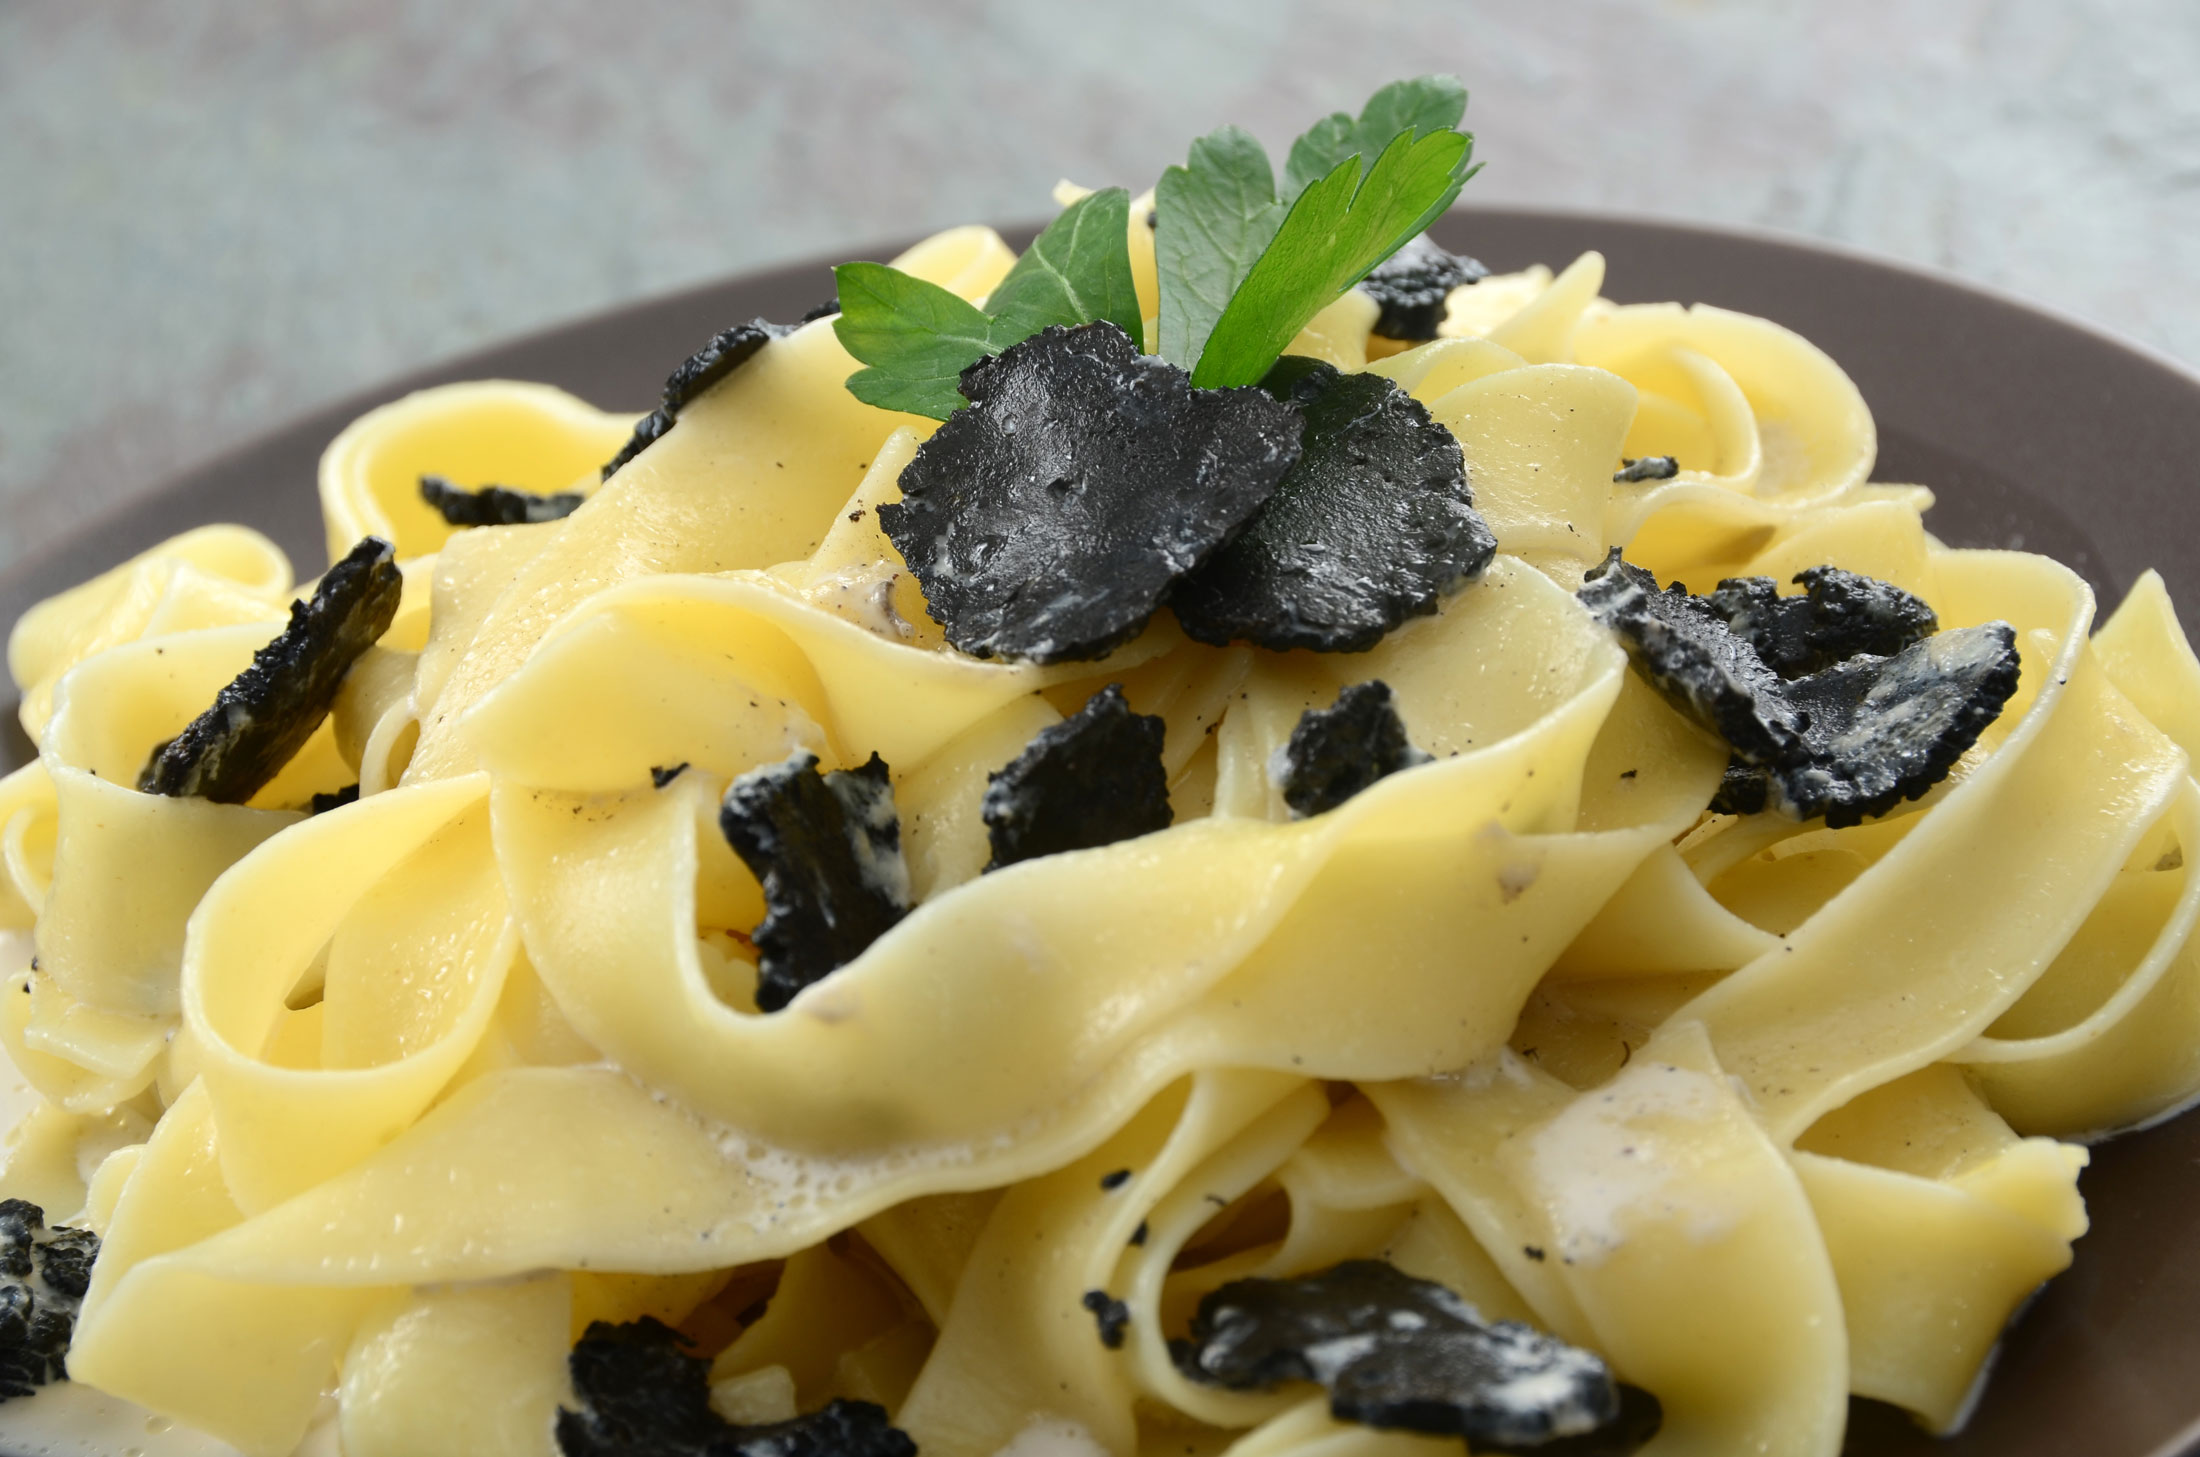 Fresh pasta topped with sliced black truffle mushrooms.